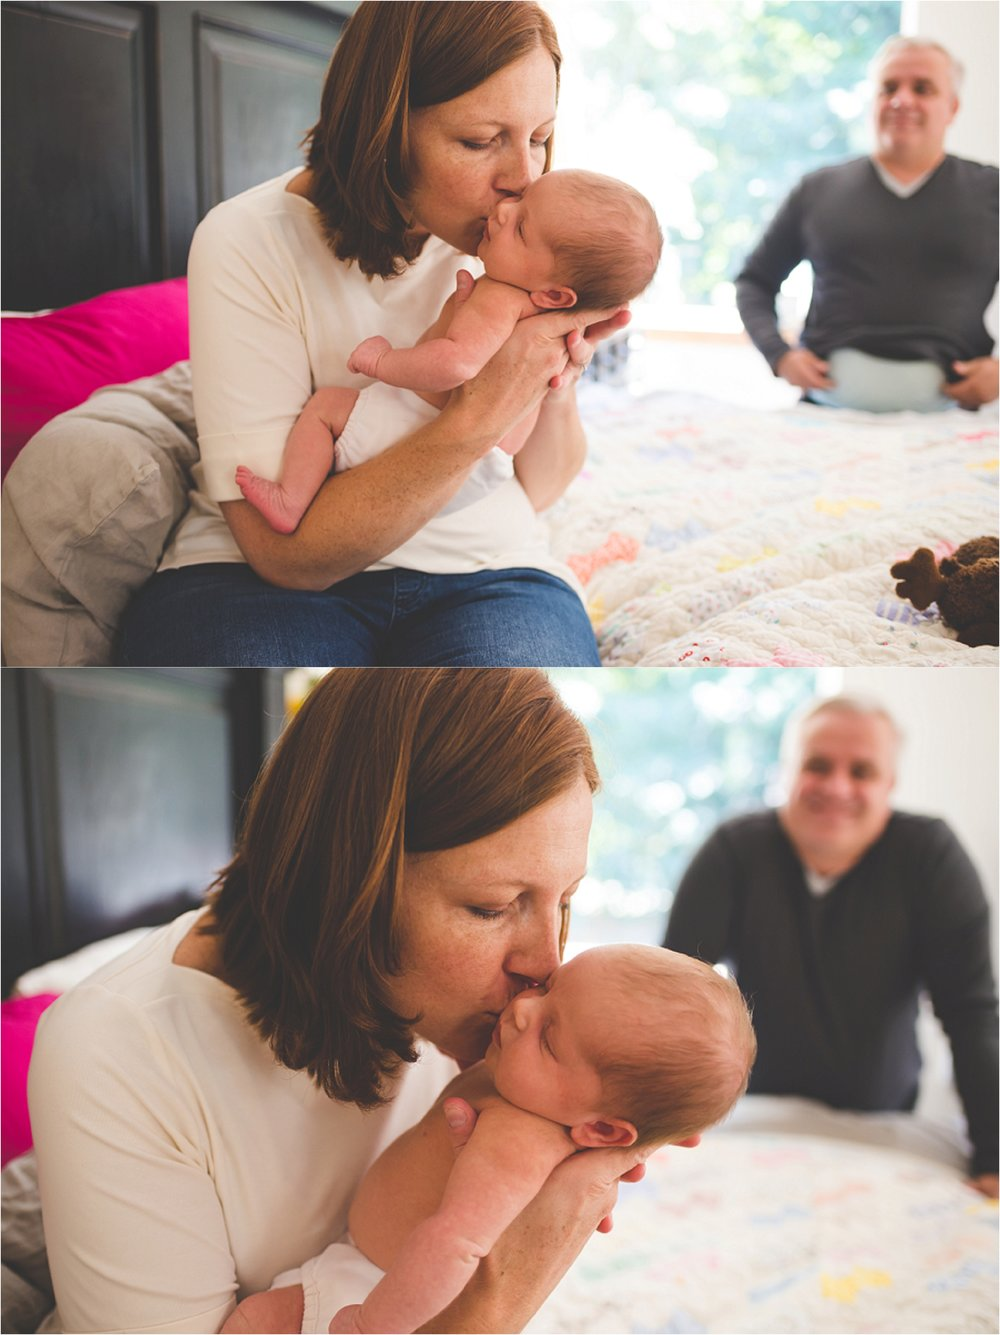 jannicka-mayte-olympia-wa-inhome-newborn-family-session-pacific-northwest-lifestyle-photographer_0021.jpg